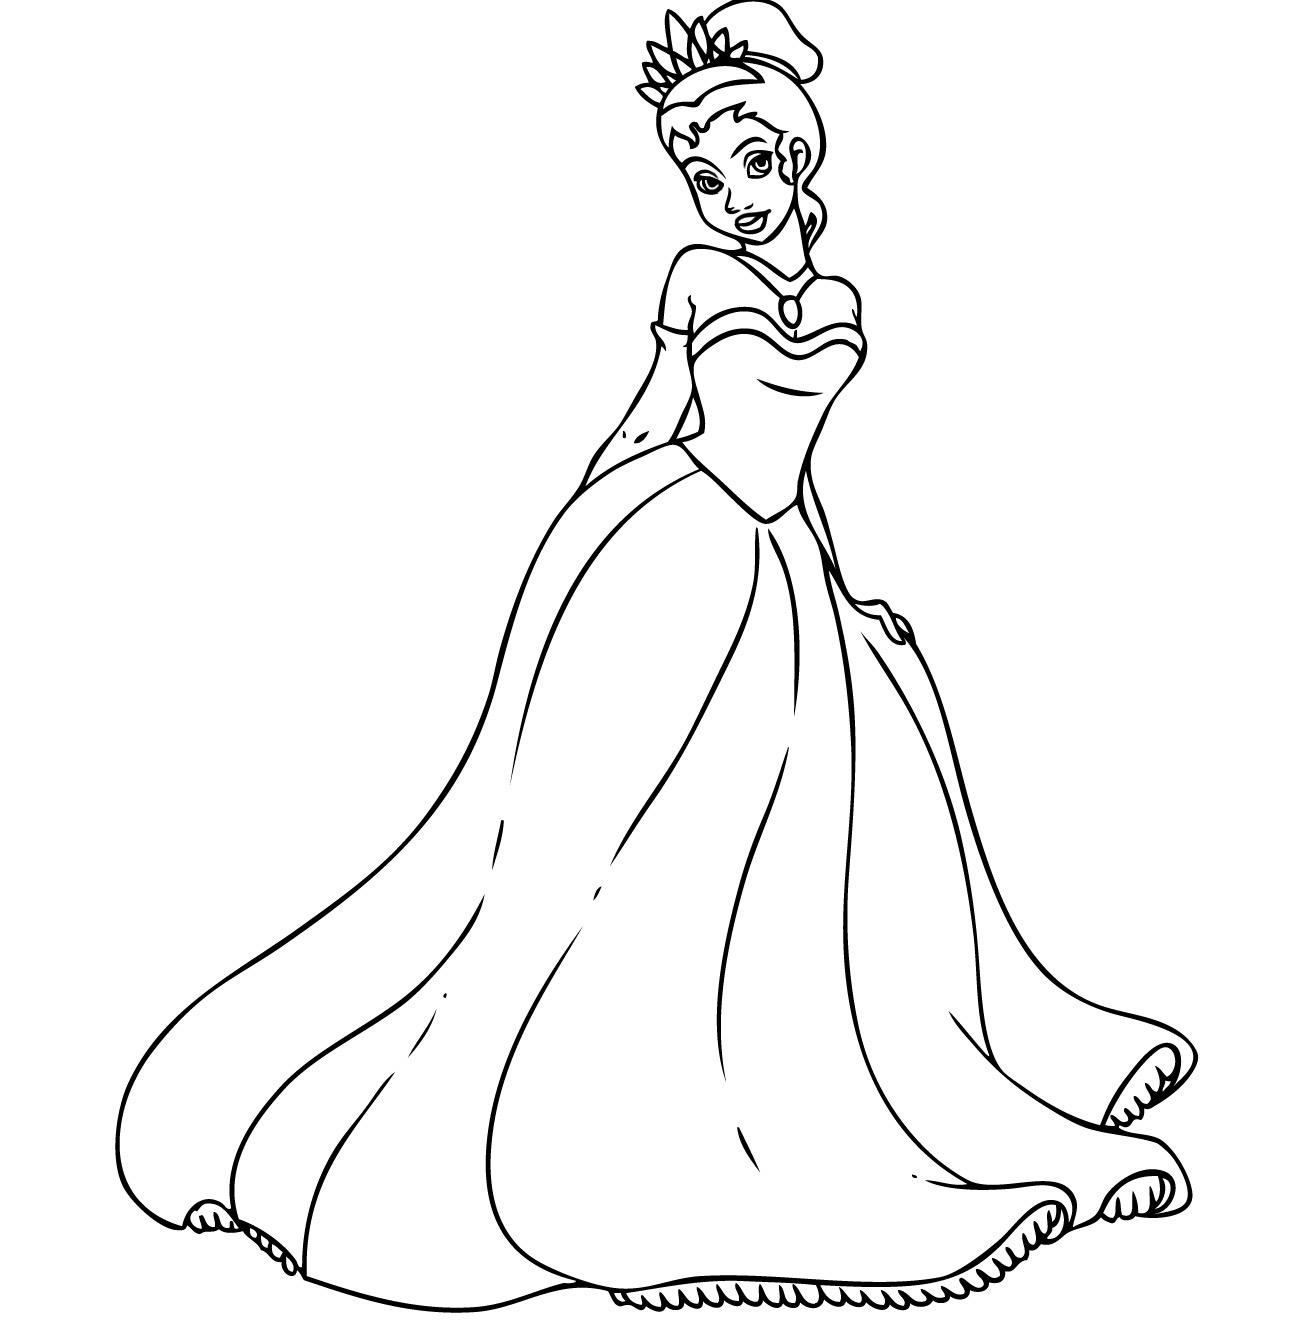 princess printable - Akba.greenw.co